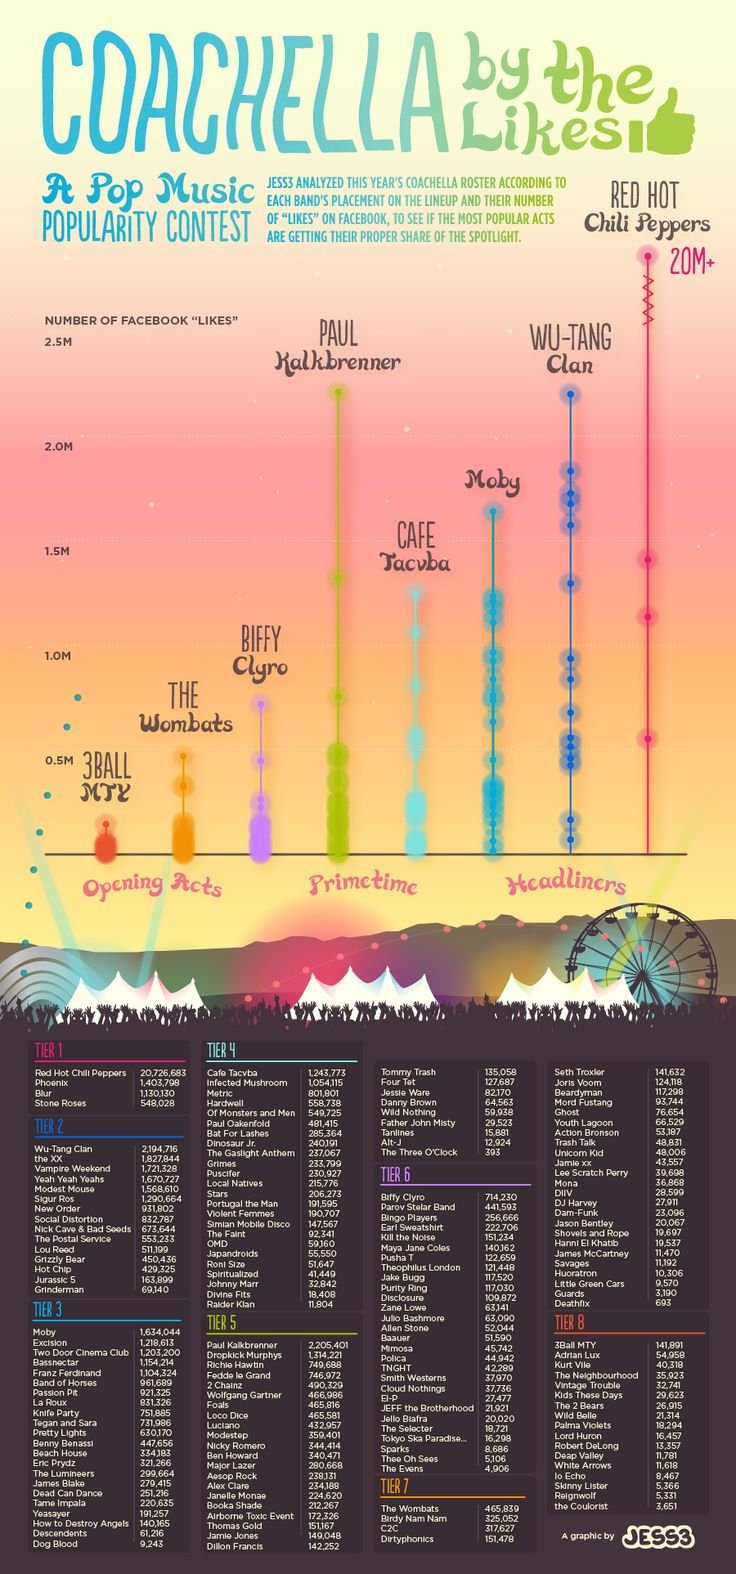 JESS3 made an infographic to see if the tiered system #Coachella uses represents the levels of bands' popularity on Facebook: